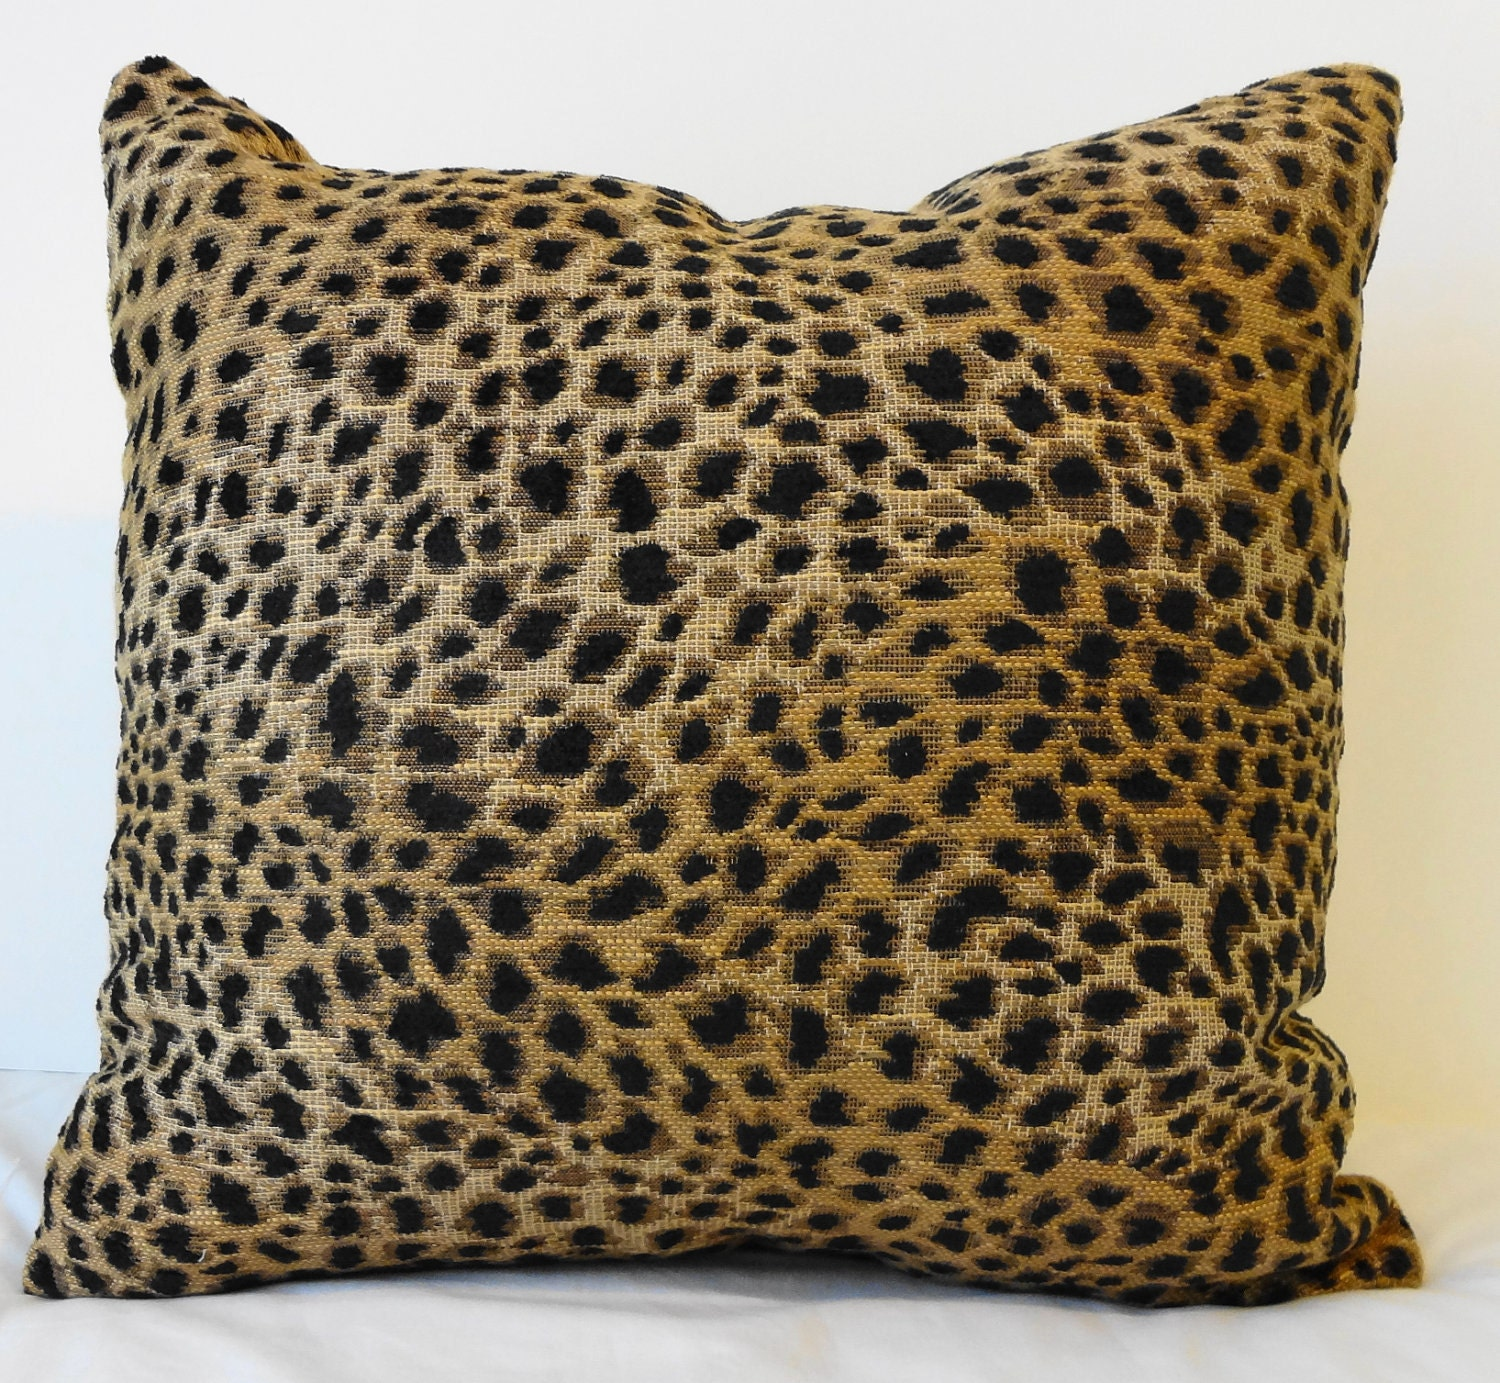 Leopard Print Decorative Pillow Cover Cheetah Animal Print